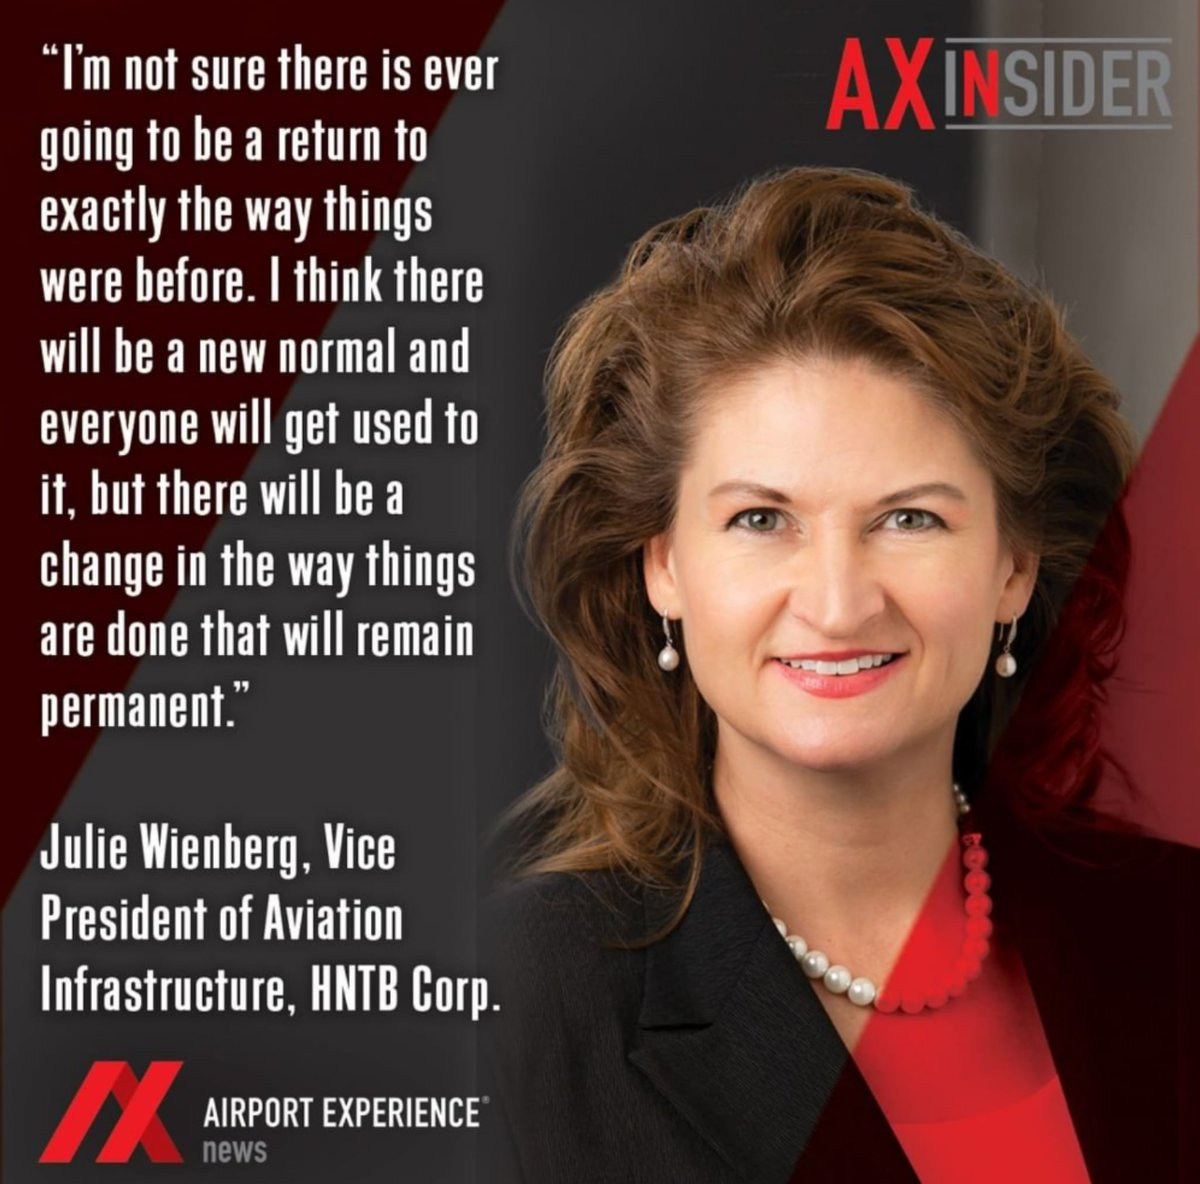 Great insight on the future of the Travel Industy #traveling #Xspa #XpresCheck #Airport #Avation #Tourism #economicrecovery #Business #investor #StockMarketpic.twitter.com/MssHbkOKrv